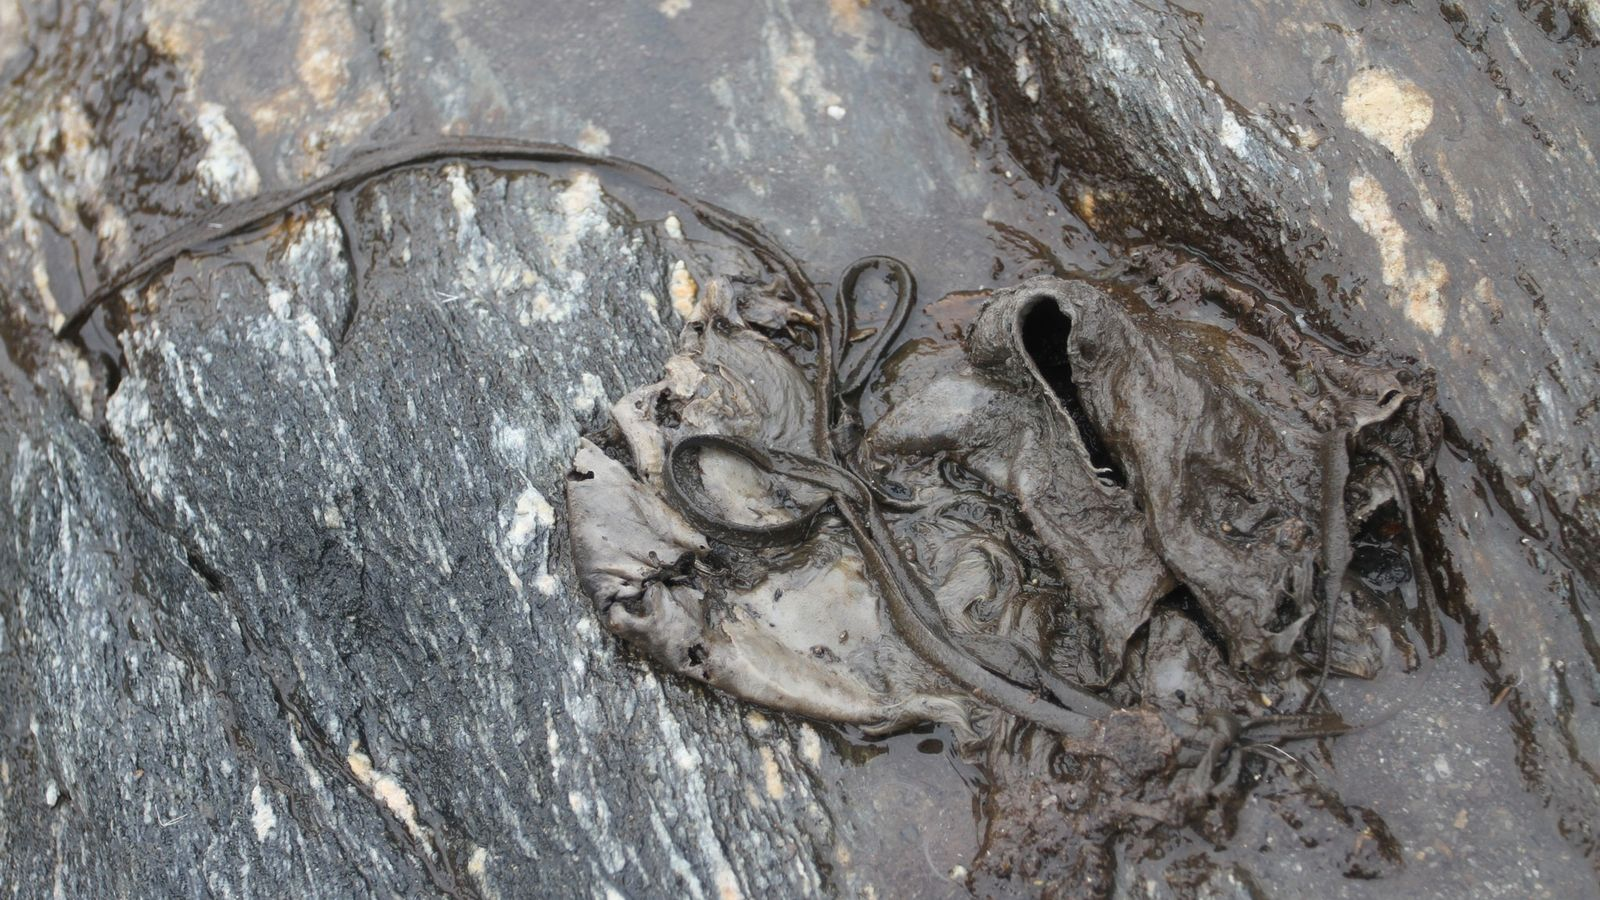 This hide shoe from Lendbreen was radiocarbon dated to the 10th century A.D.